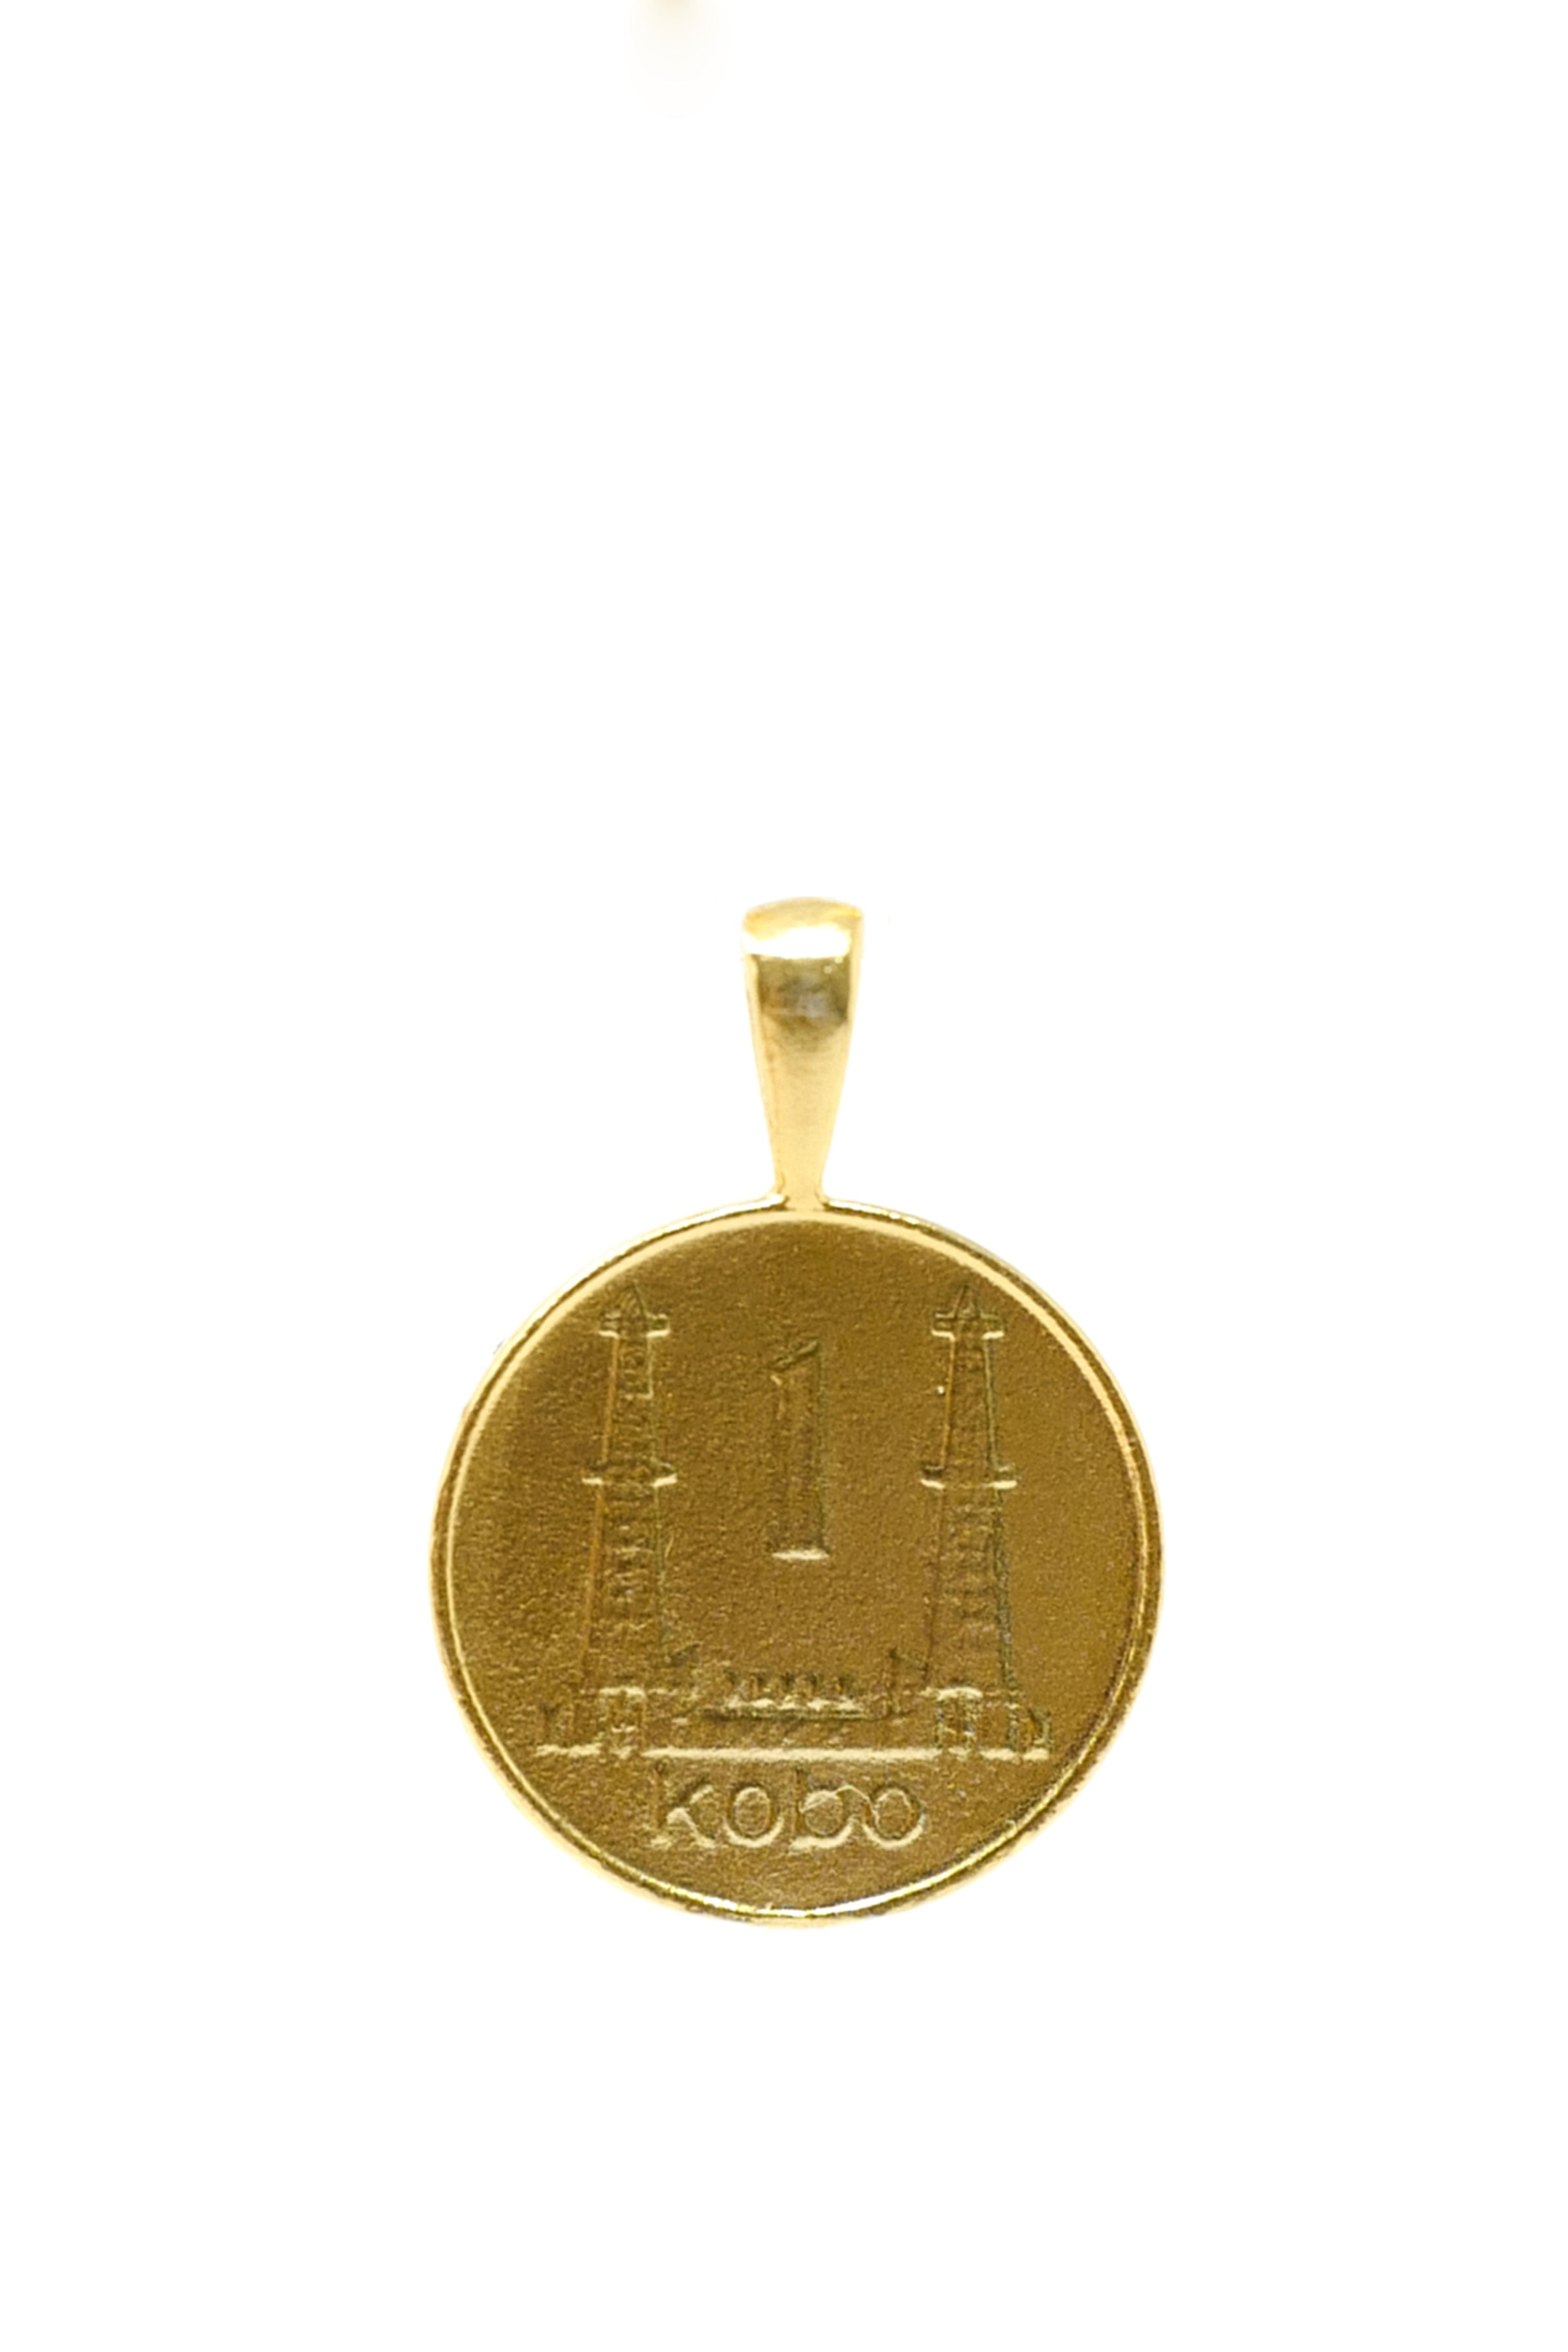 THE NIGERIA Kobo Coin Pendant